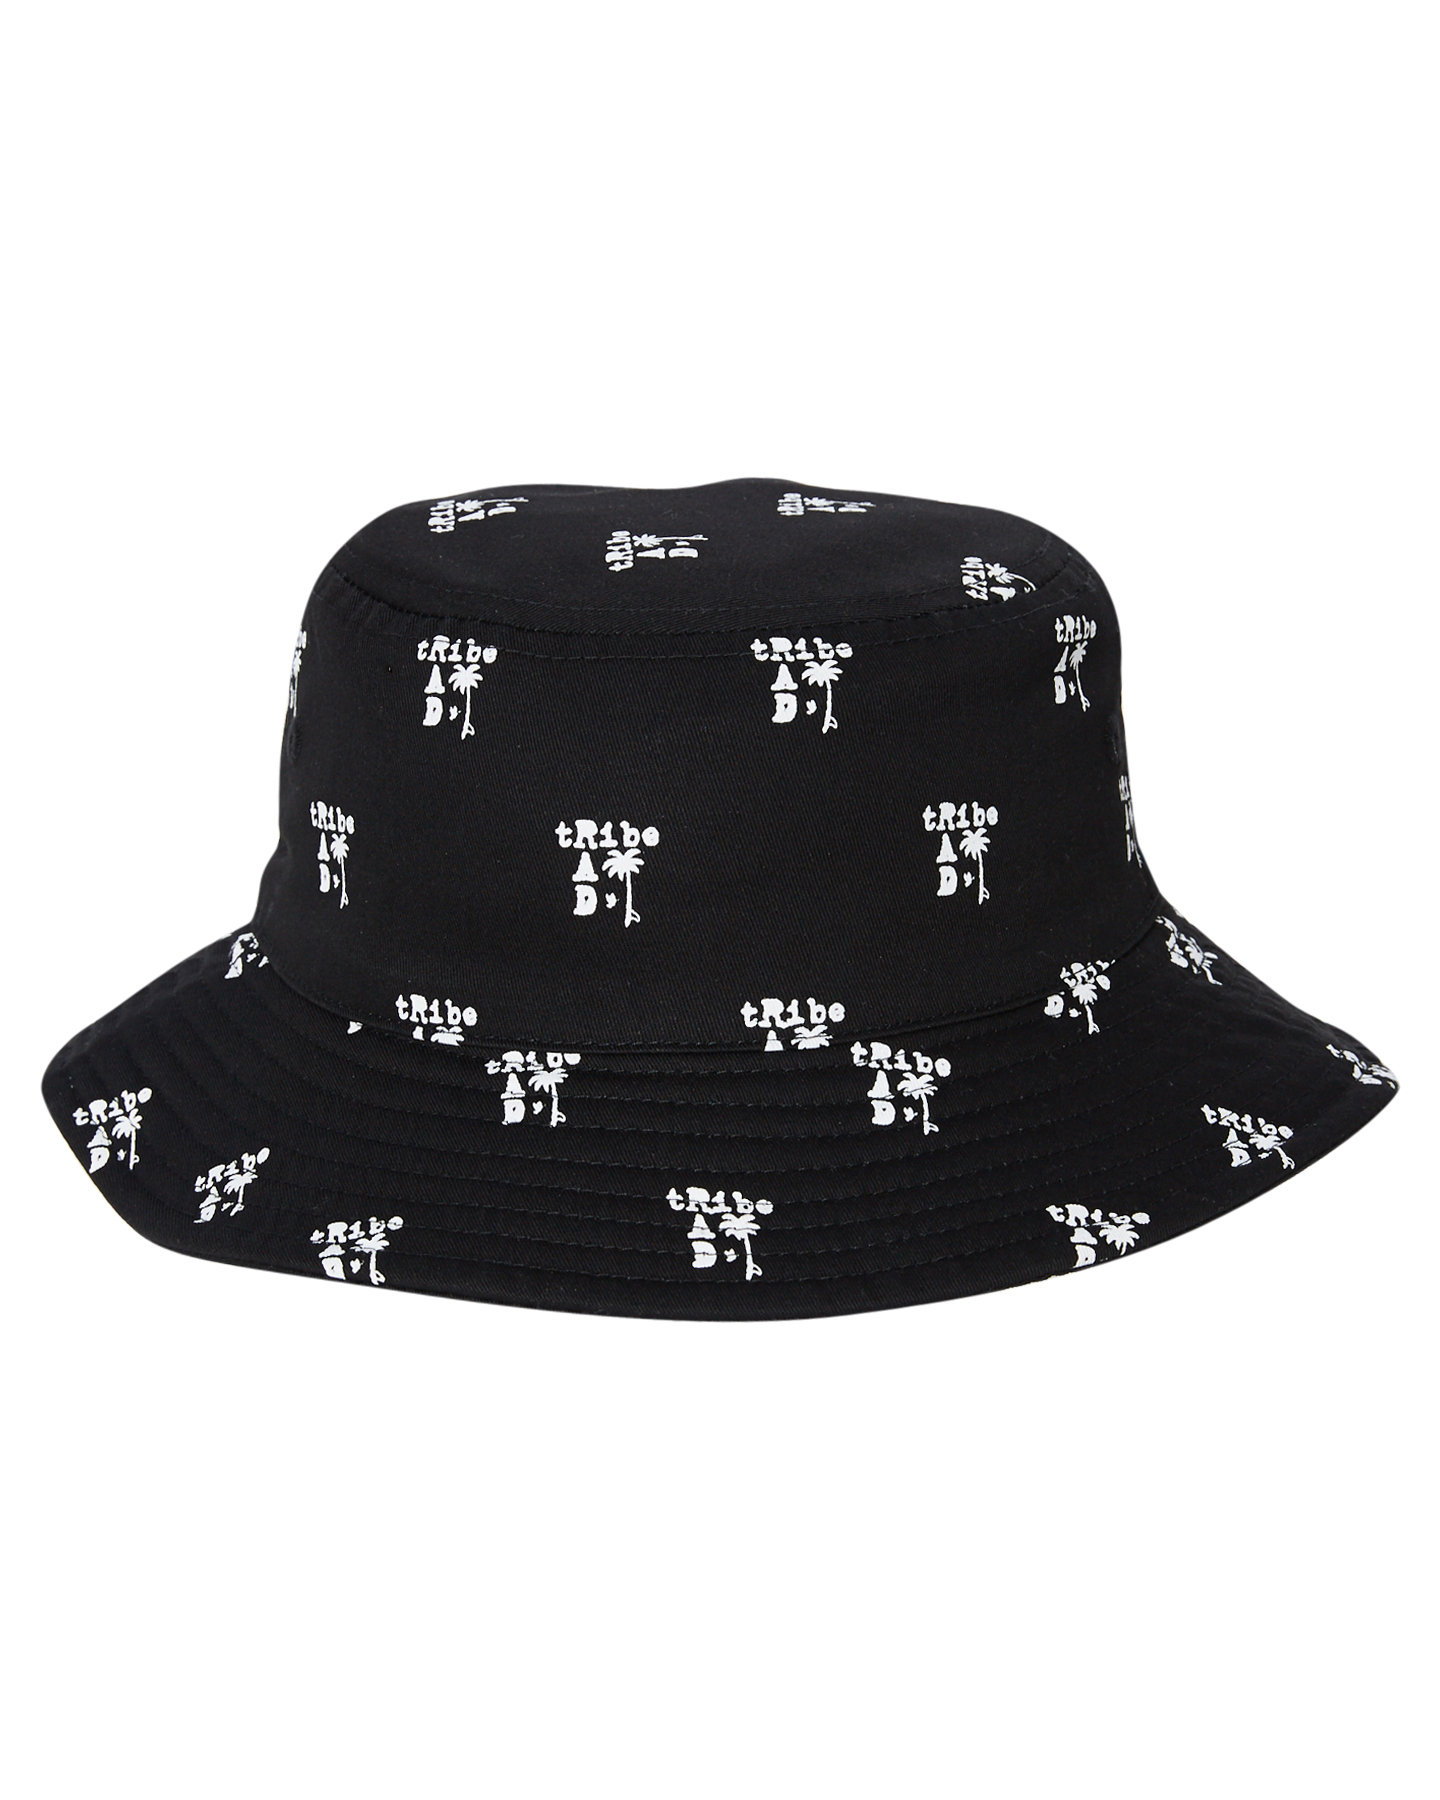 Radicool Dude Rad Tribe Reversible Bucket Hat Black Logo